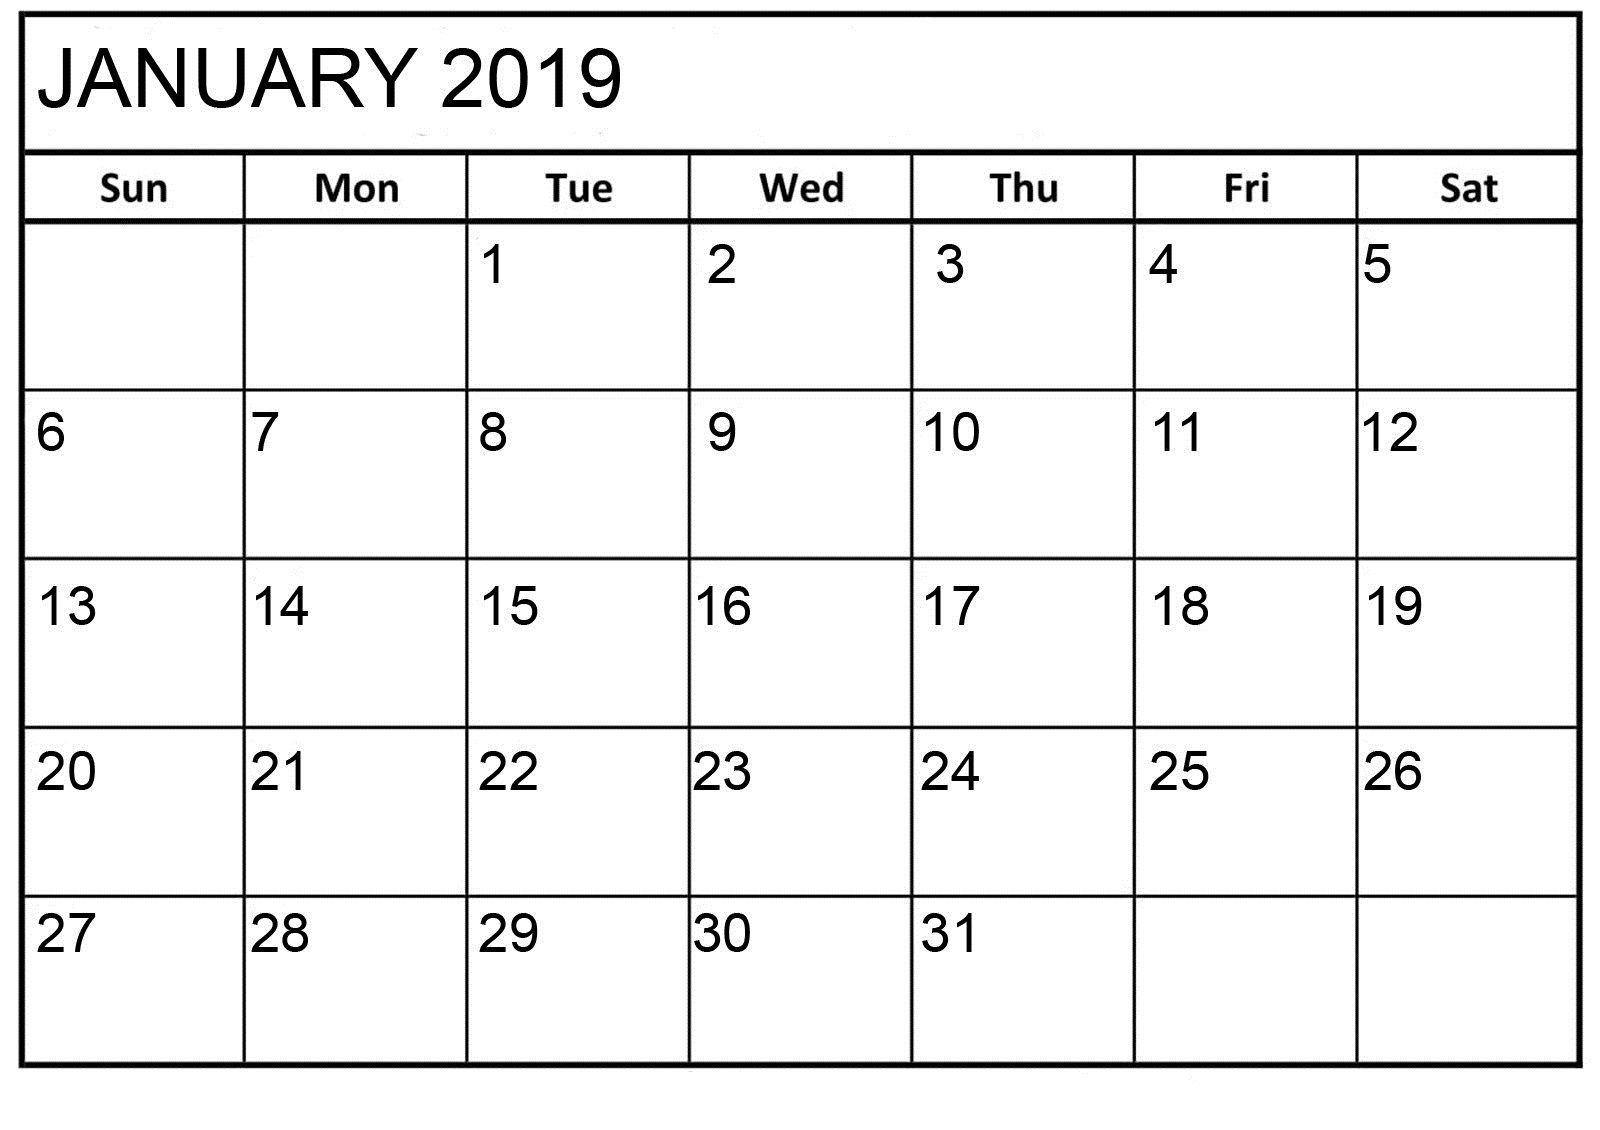 January 2019 Basic Editable Calendar | Printable Calendar